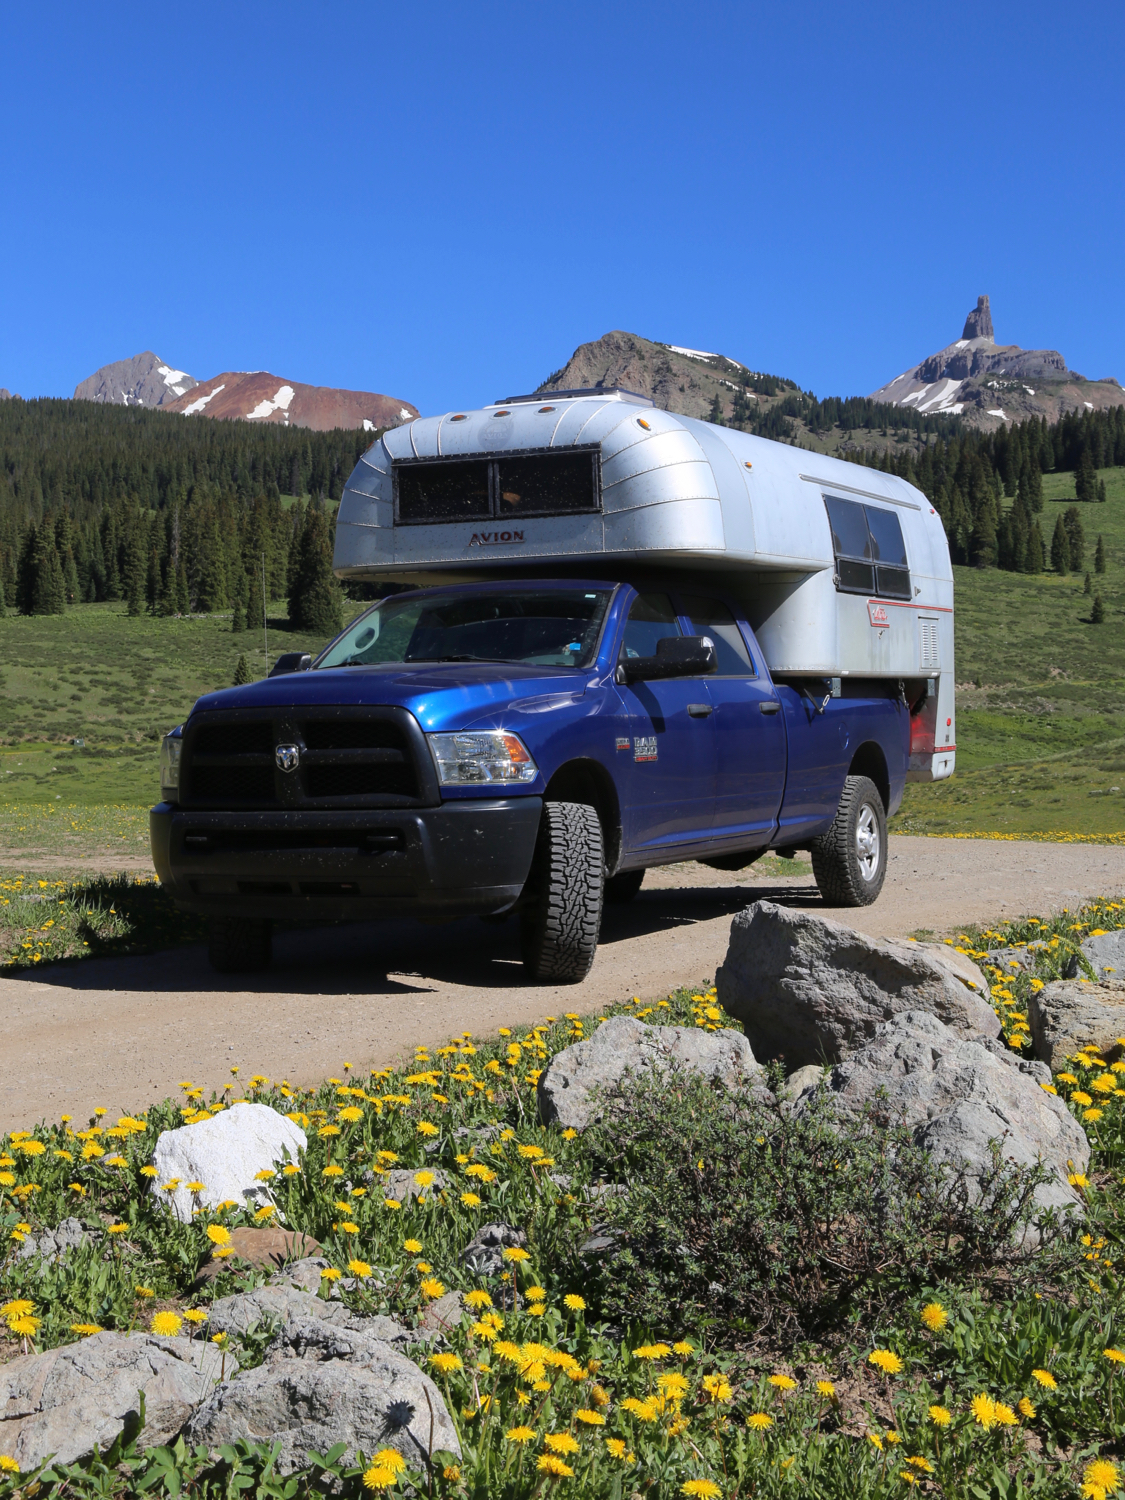 Vintage truck camper on a blue truck on a dirt road in the Colorado wilderness